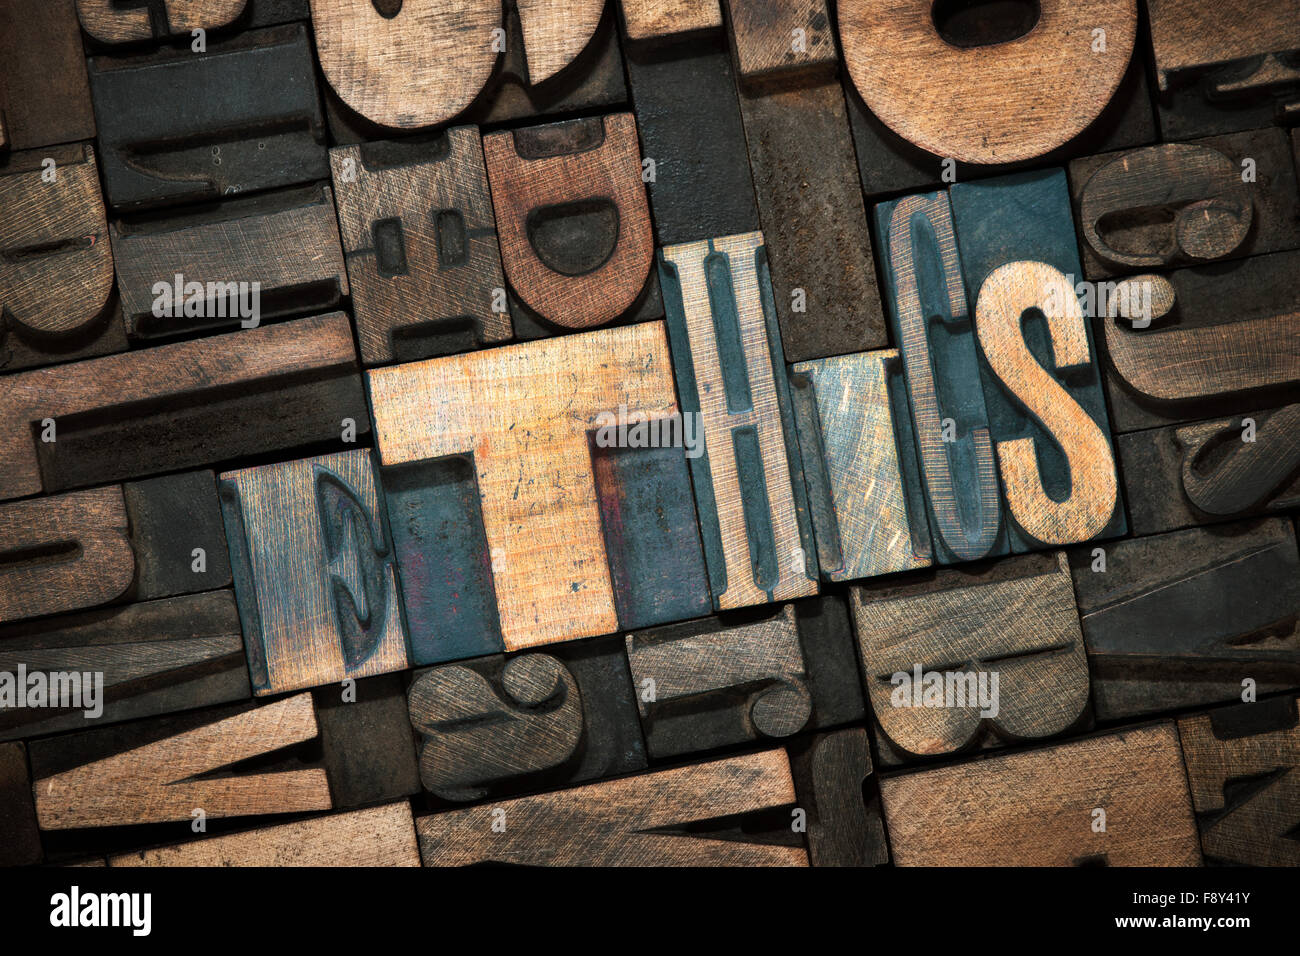 ethics word made from wooden letterpress blocks inside many letters background - Stock Image